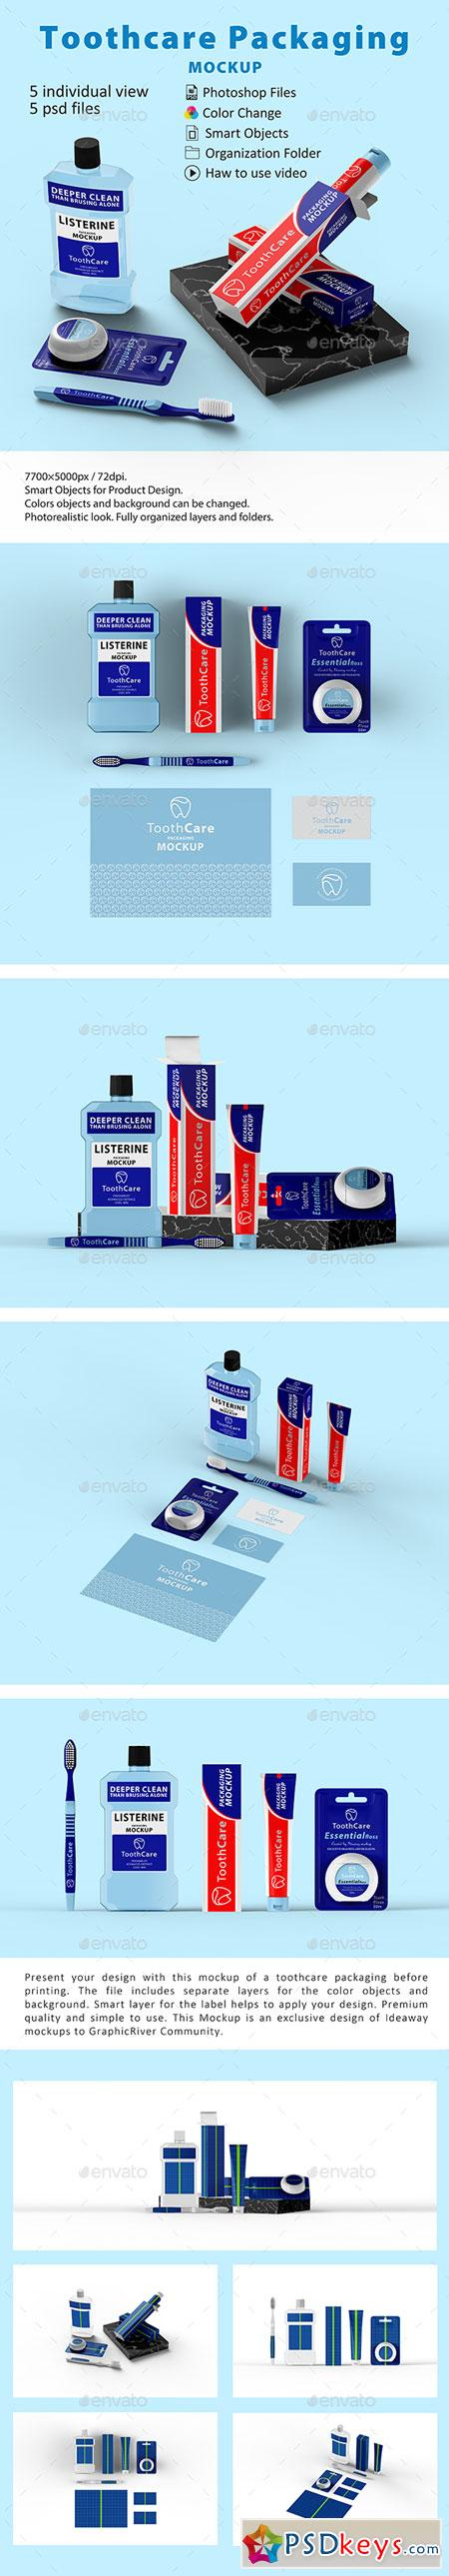 Toothcare Packaging Mockup 22723216